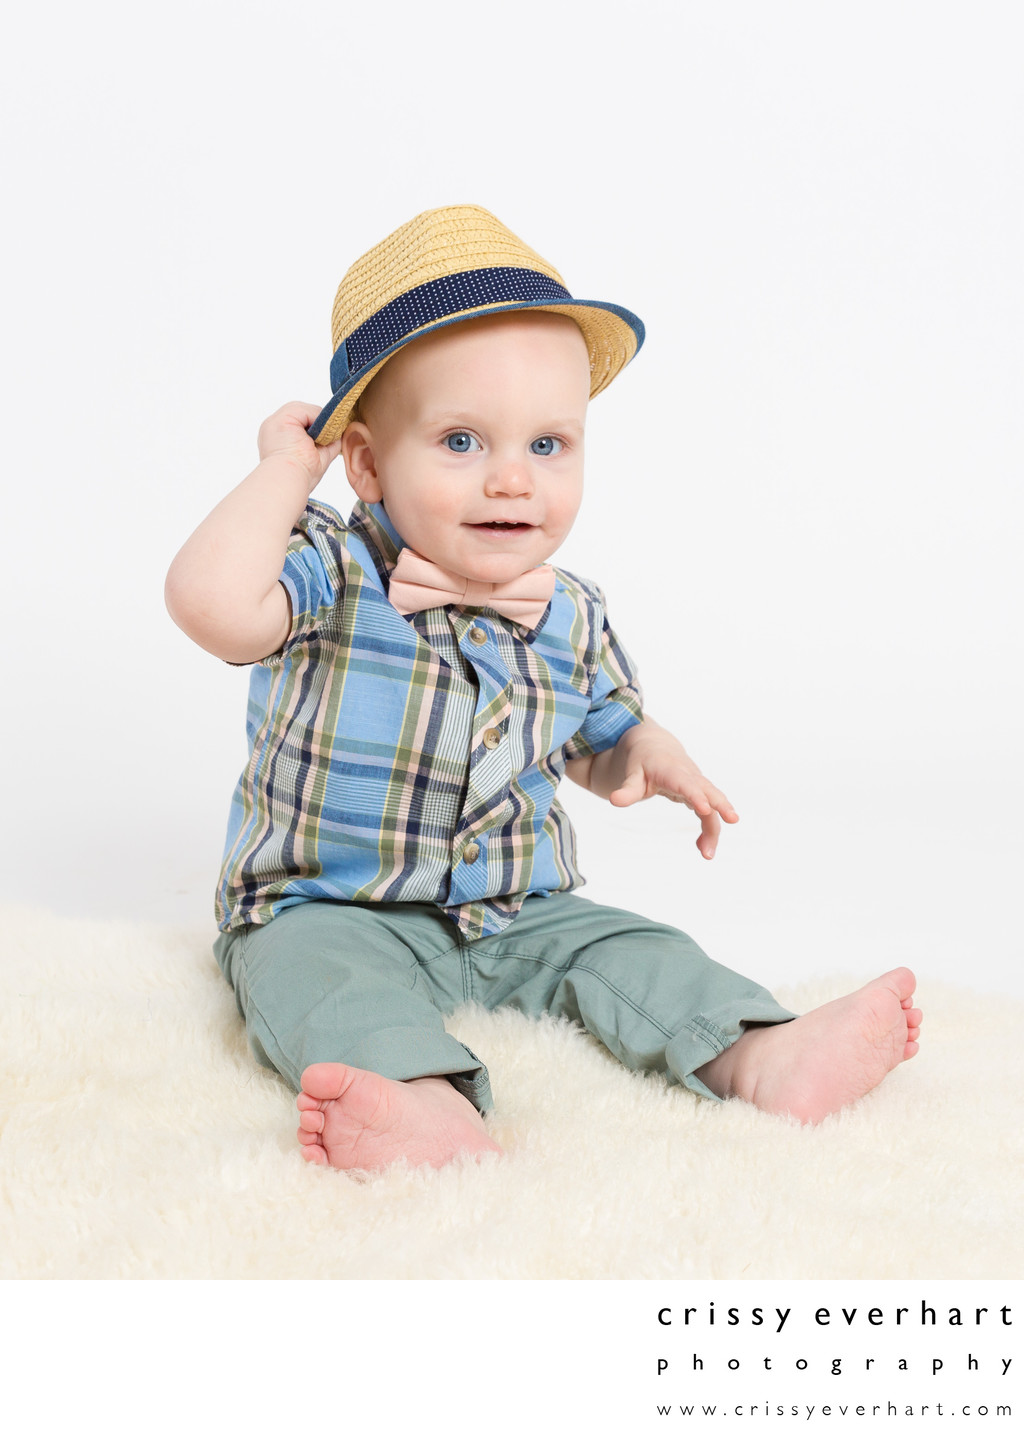 Stylish One Year Old with Hat and Bow Tie